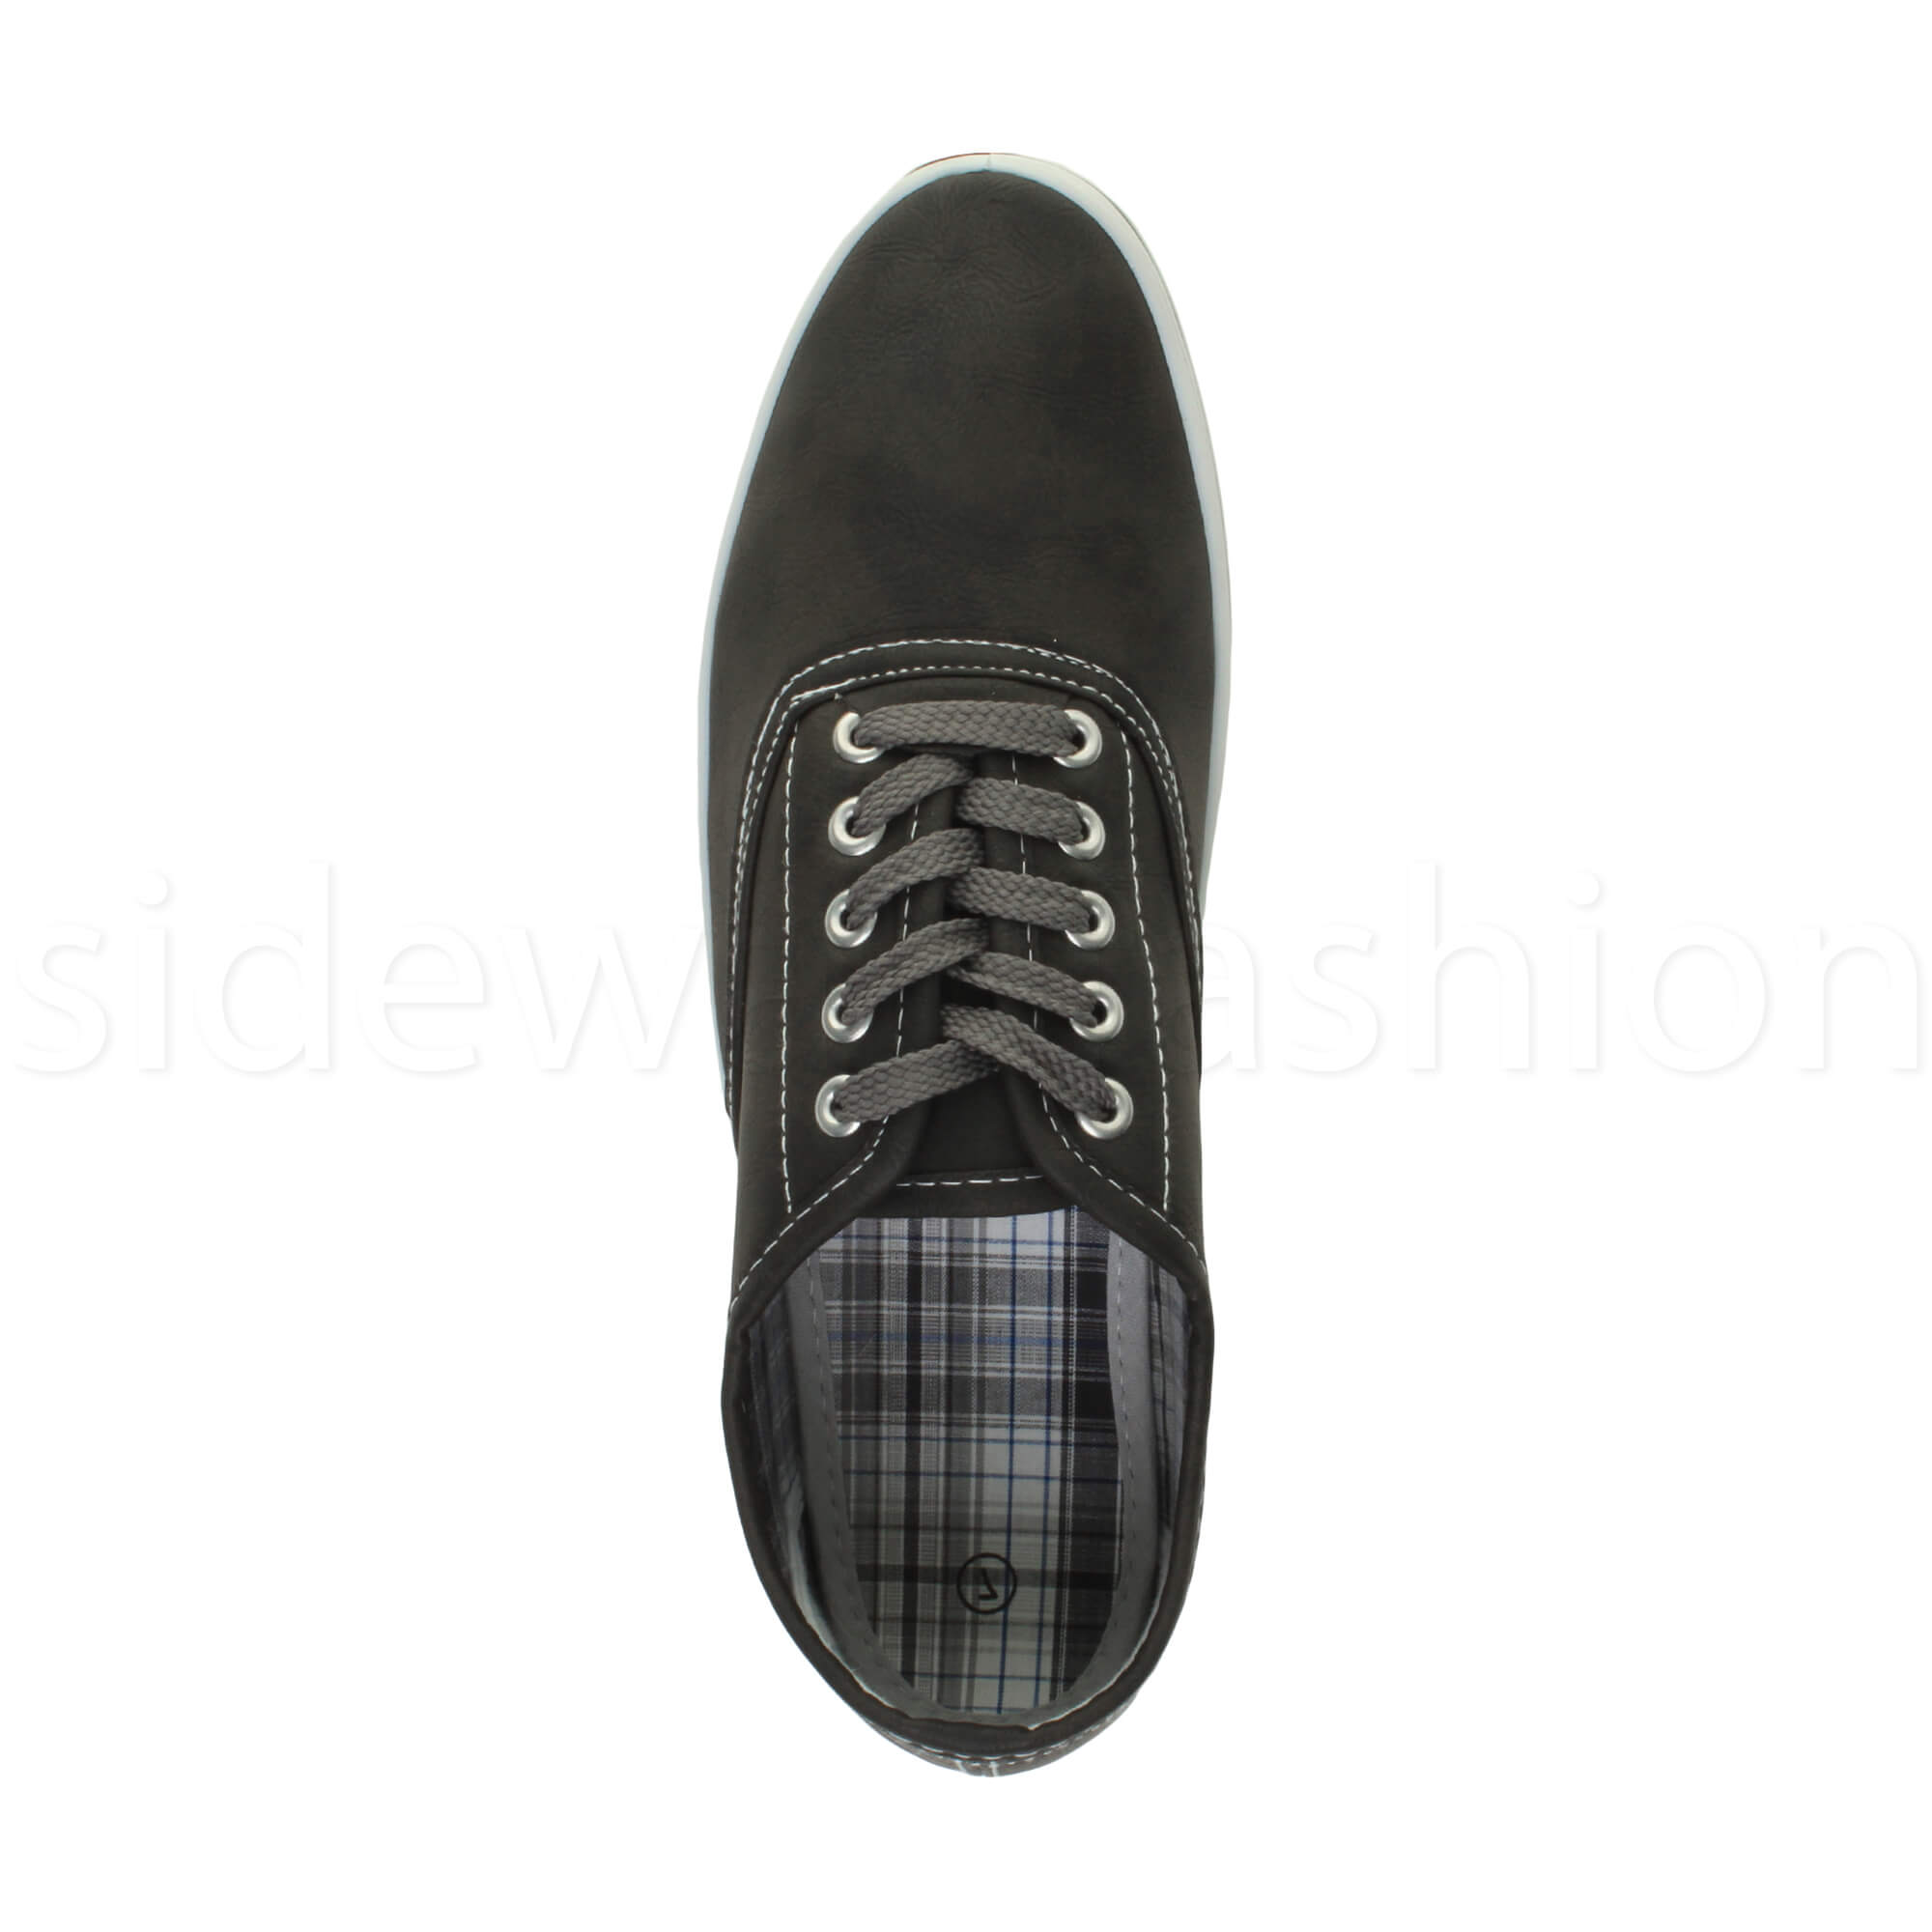 Mens-flat-lace-up-work-smart-plain-casual-pump-plimsoles-trainers-shoes-size thumbnail 6